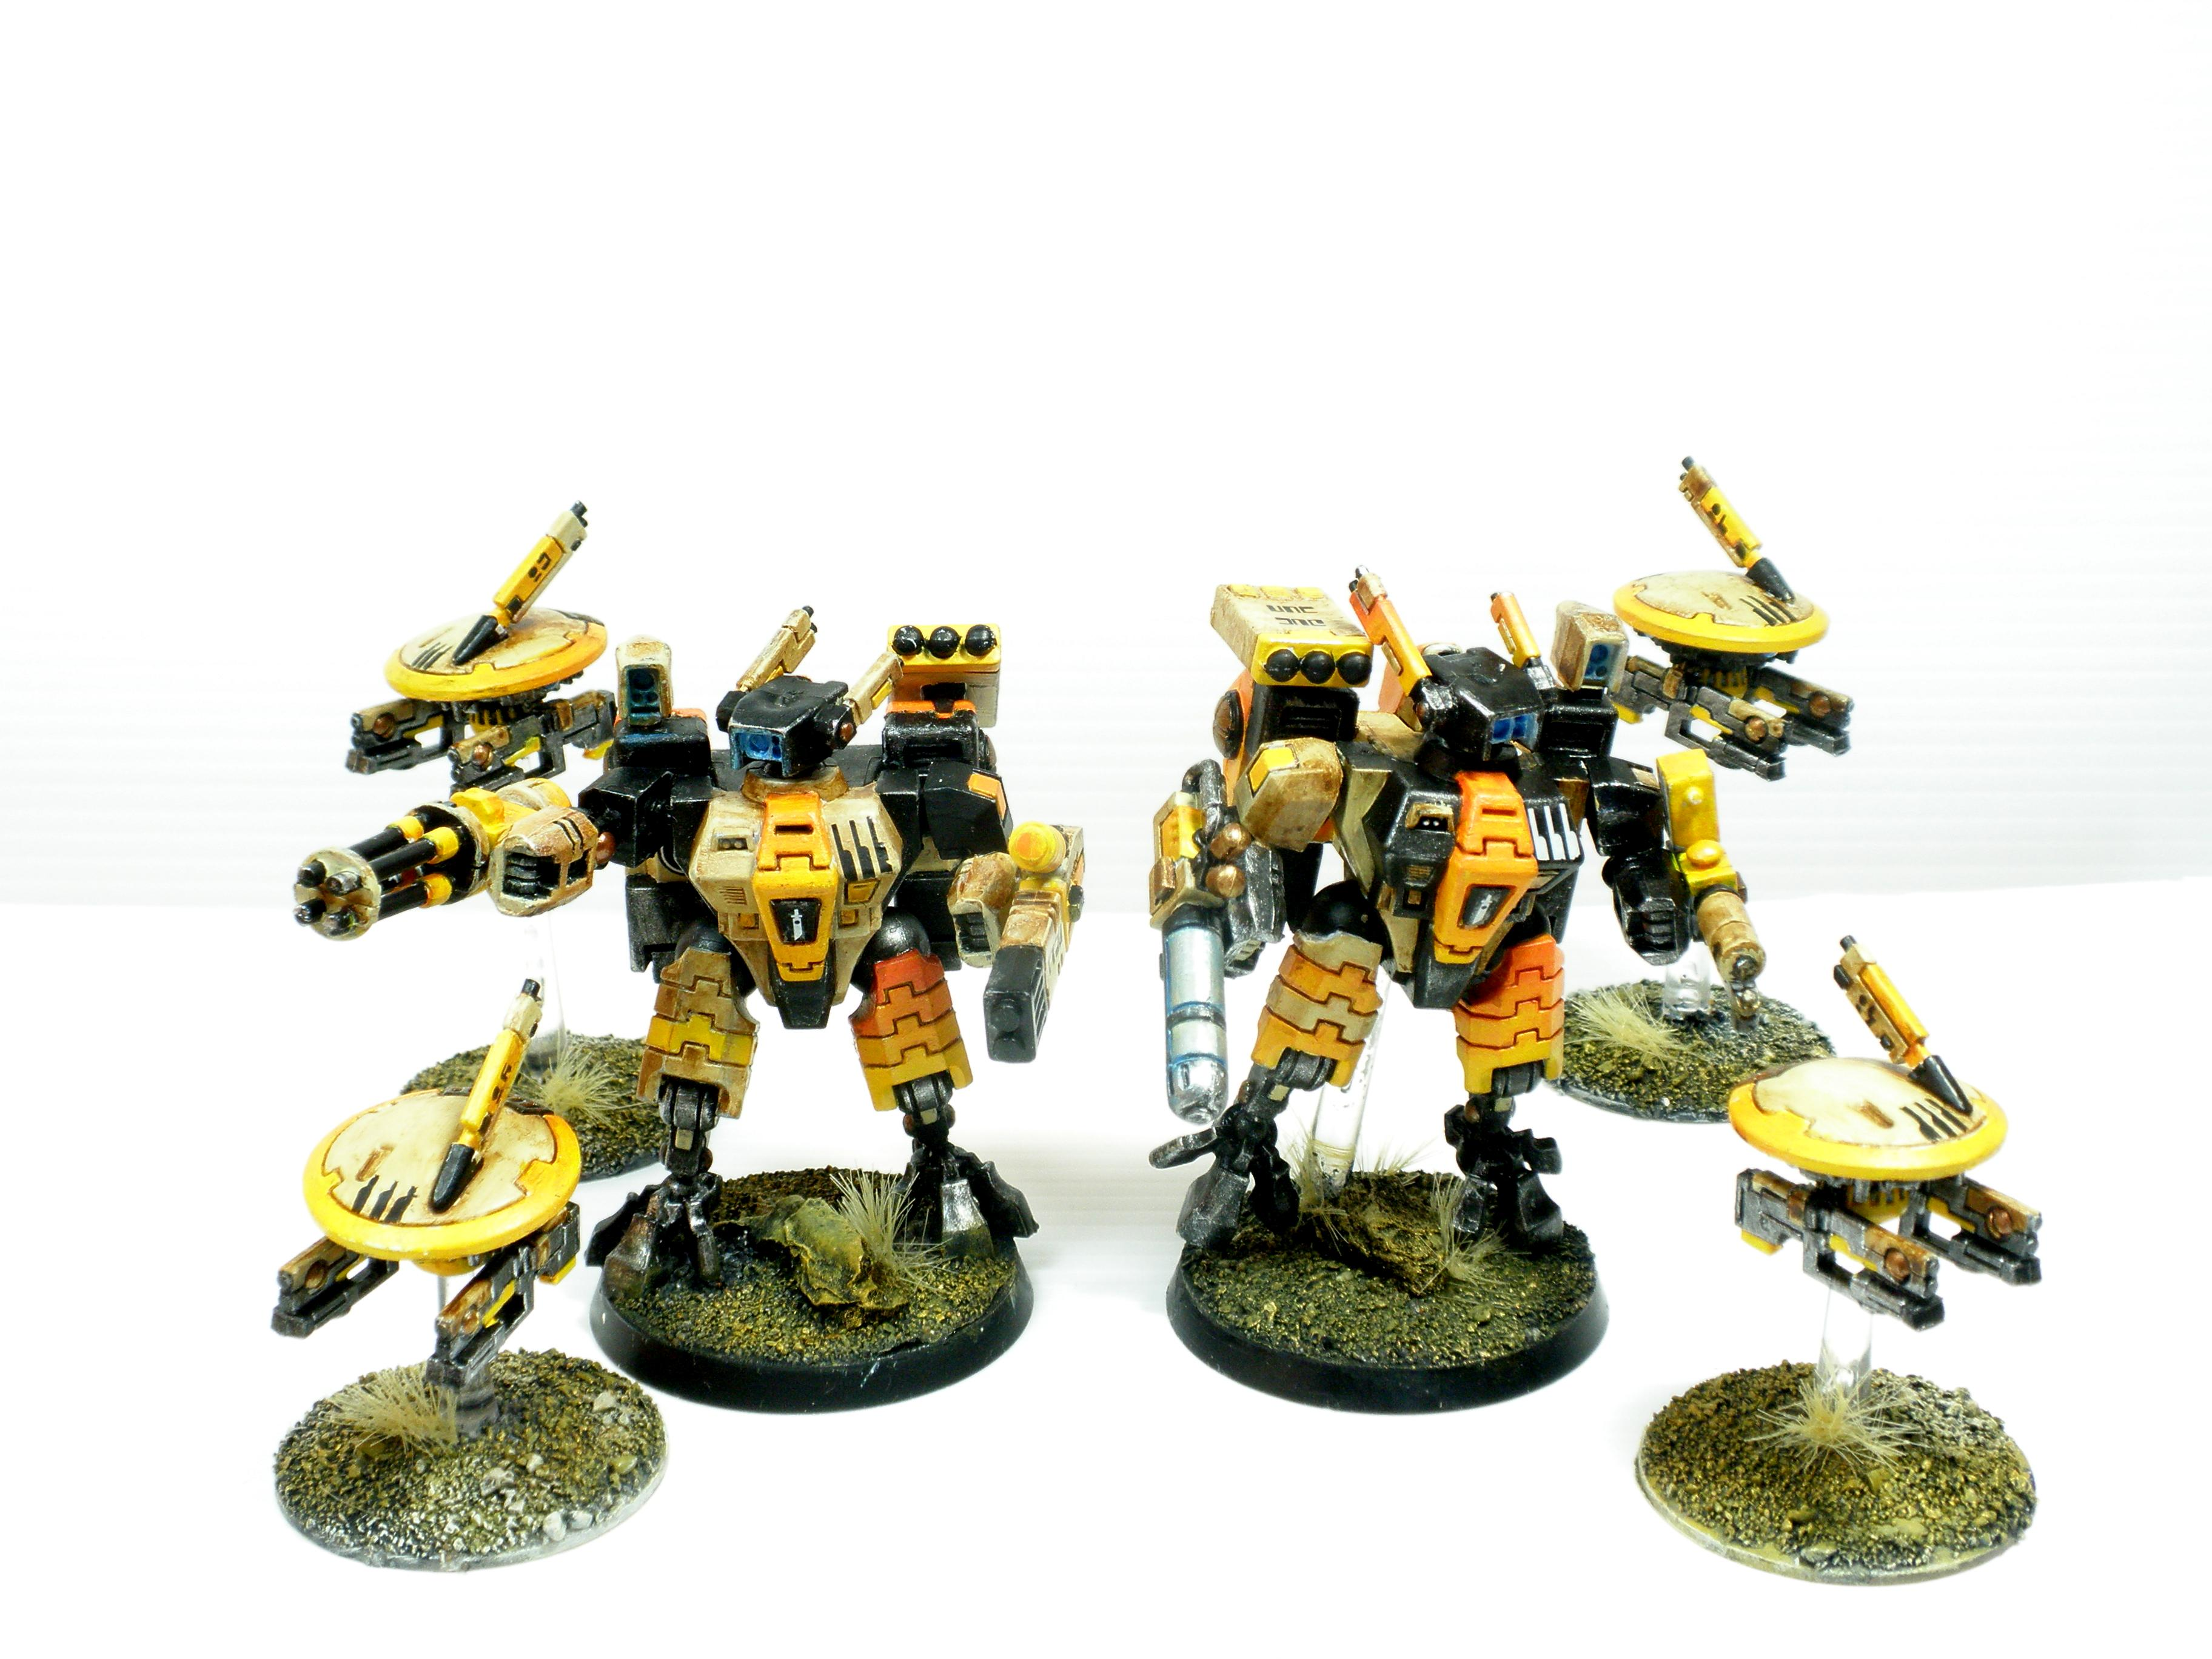 Tau Xv8, Here we are.